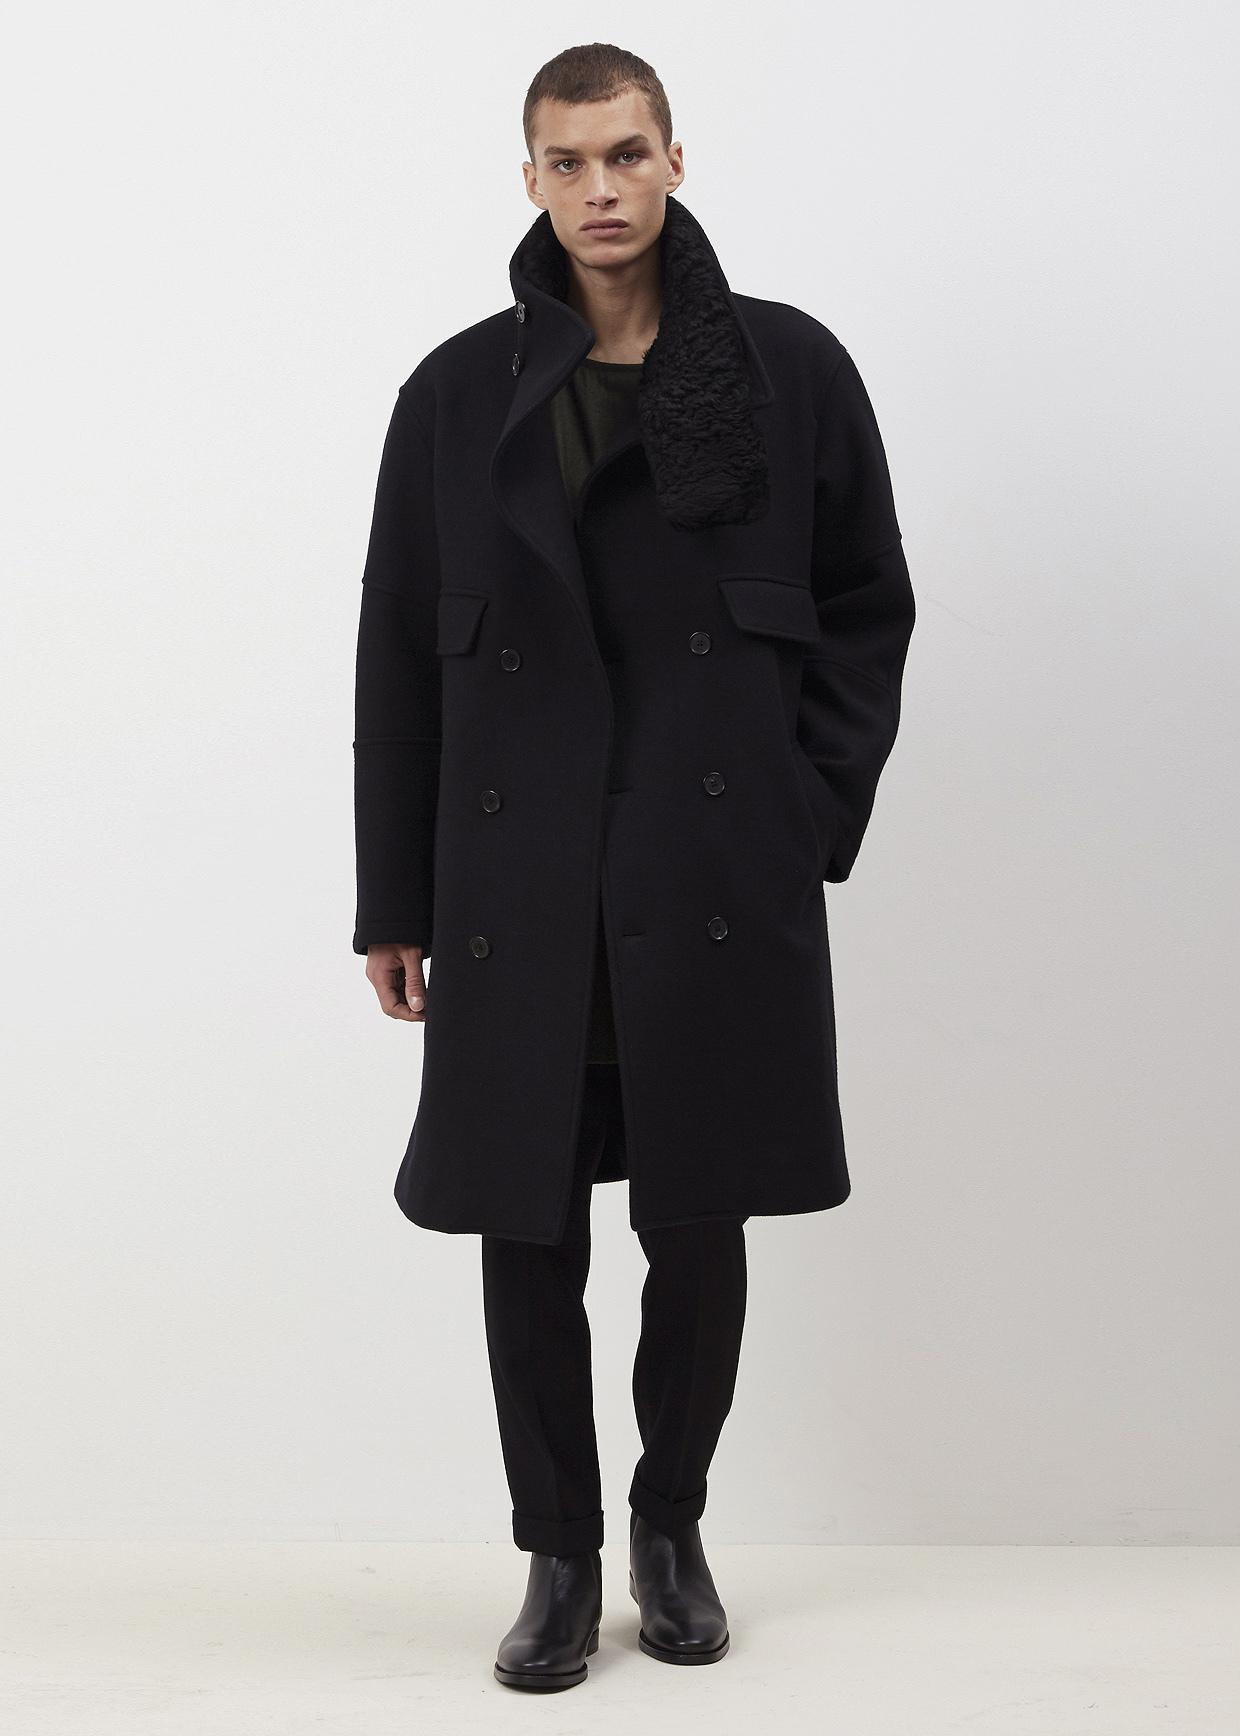 lyst jil sander black lussemburgo trench coat in black. Black Bedroom Furniture Sets. Home Design Ideas